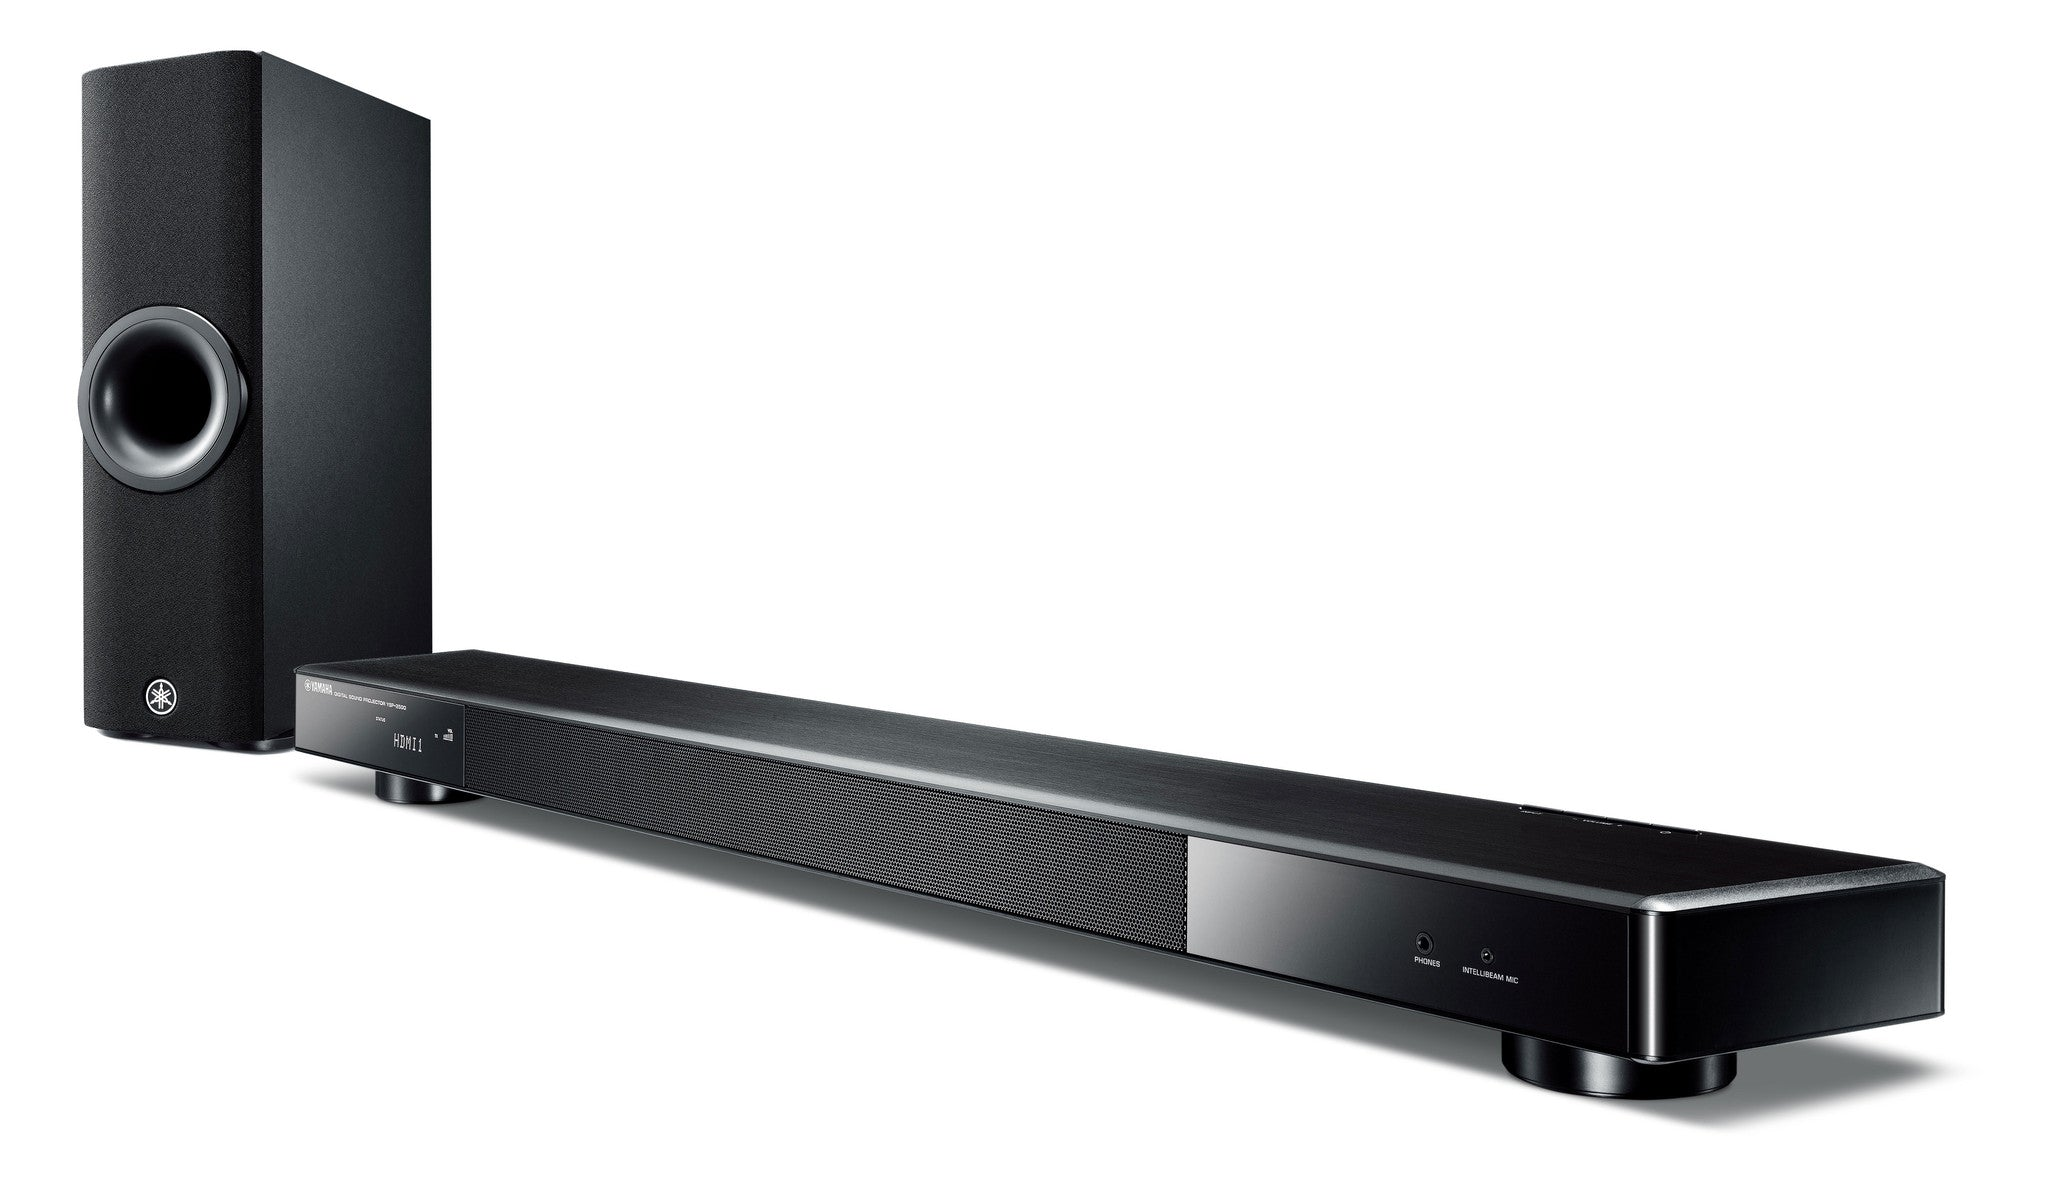 Yamaha YSP-2500BL True 7.1 Ch Surround Sound Bar with Bluetooth and wireless subwoofer.